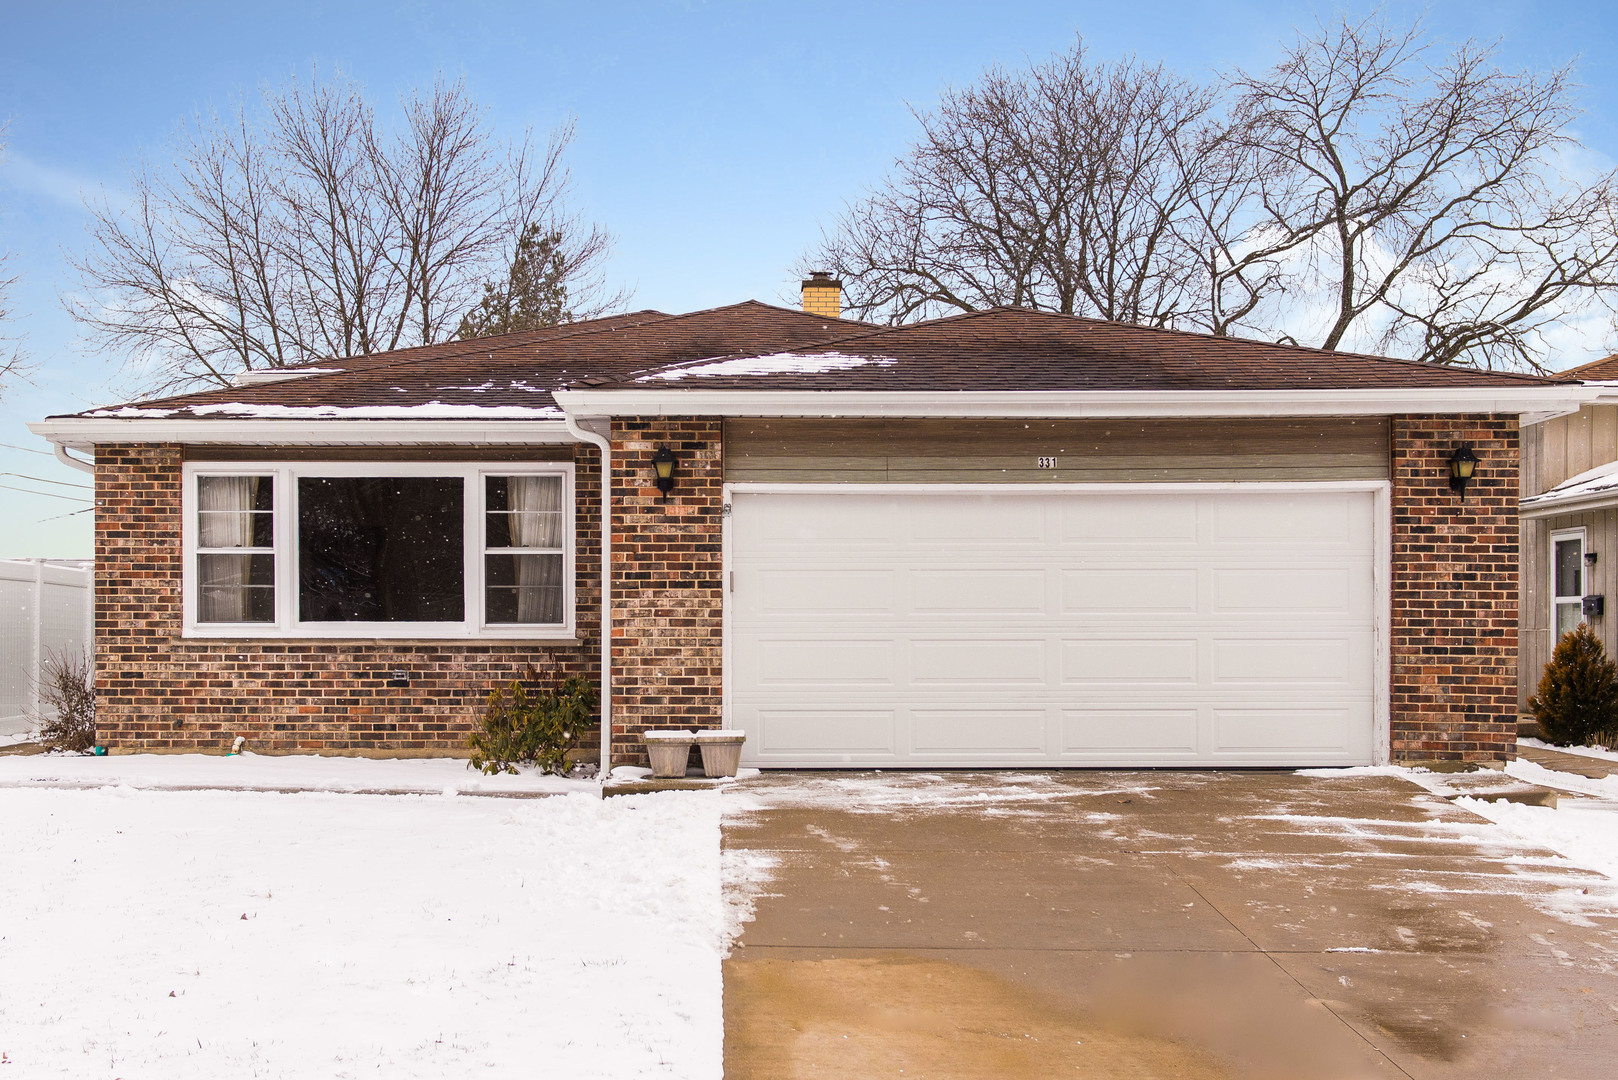 Super solid split level in Hammerschmidt school district. Three  large bedrooms upstairs and an additional bedroom/office on lower level. Huge family room. Roomy eat-in kitchen. Large yard. Lots of news in this comfy home. HVAC-2020, Hot water heater-2020, roof-2015, garage door-2020, carpeting throughout-2020.